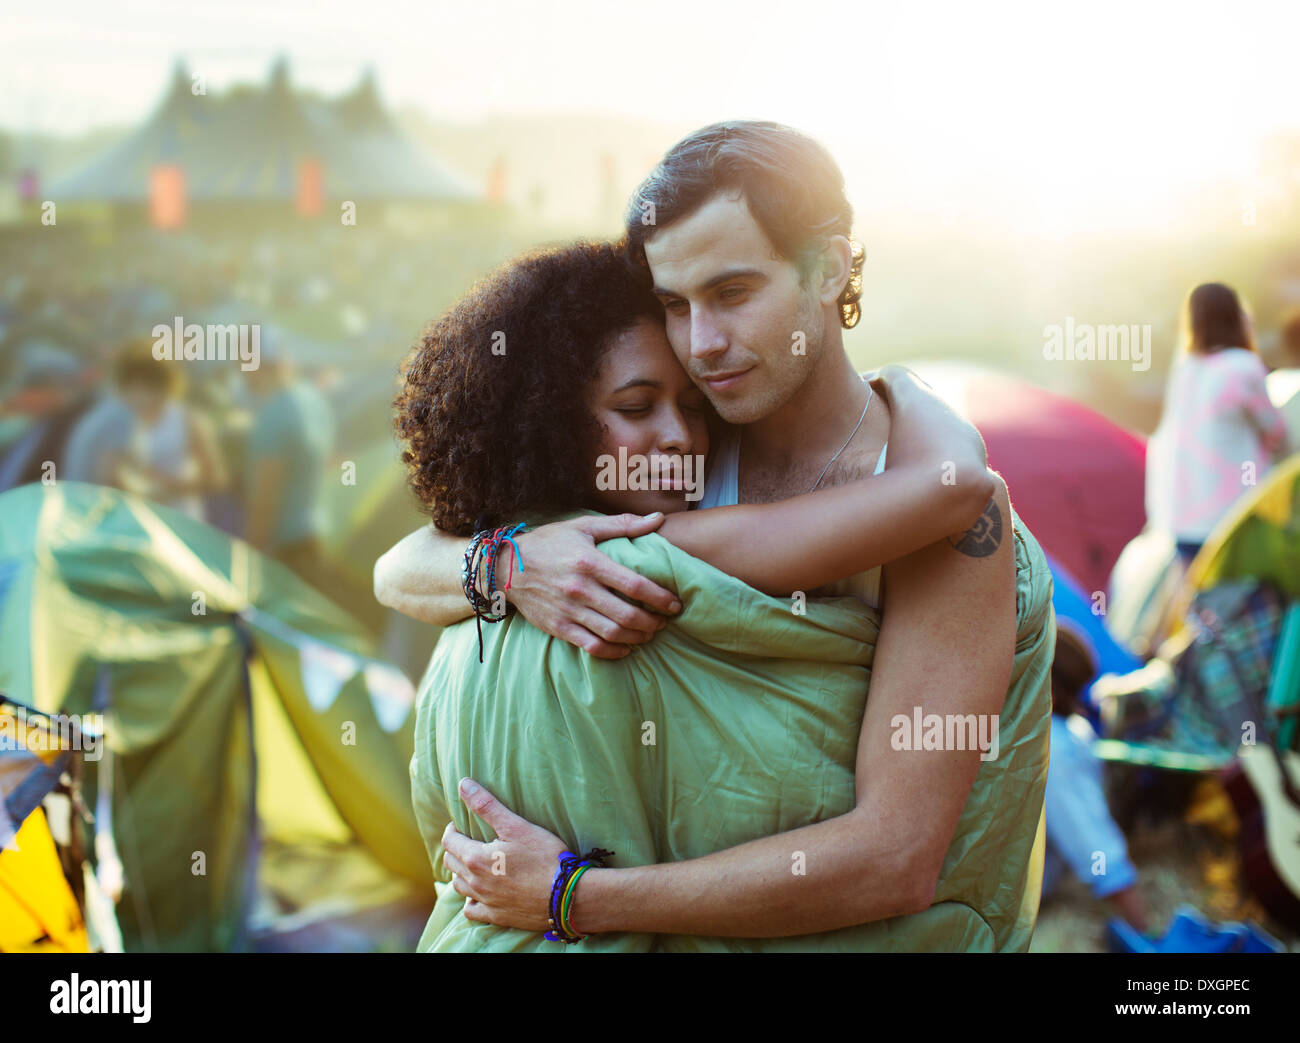 Sac de couchage en couple hugging outside tents at music festival Photo Stock